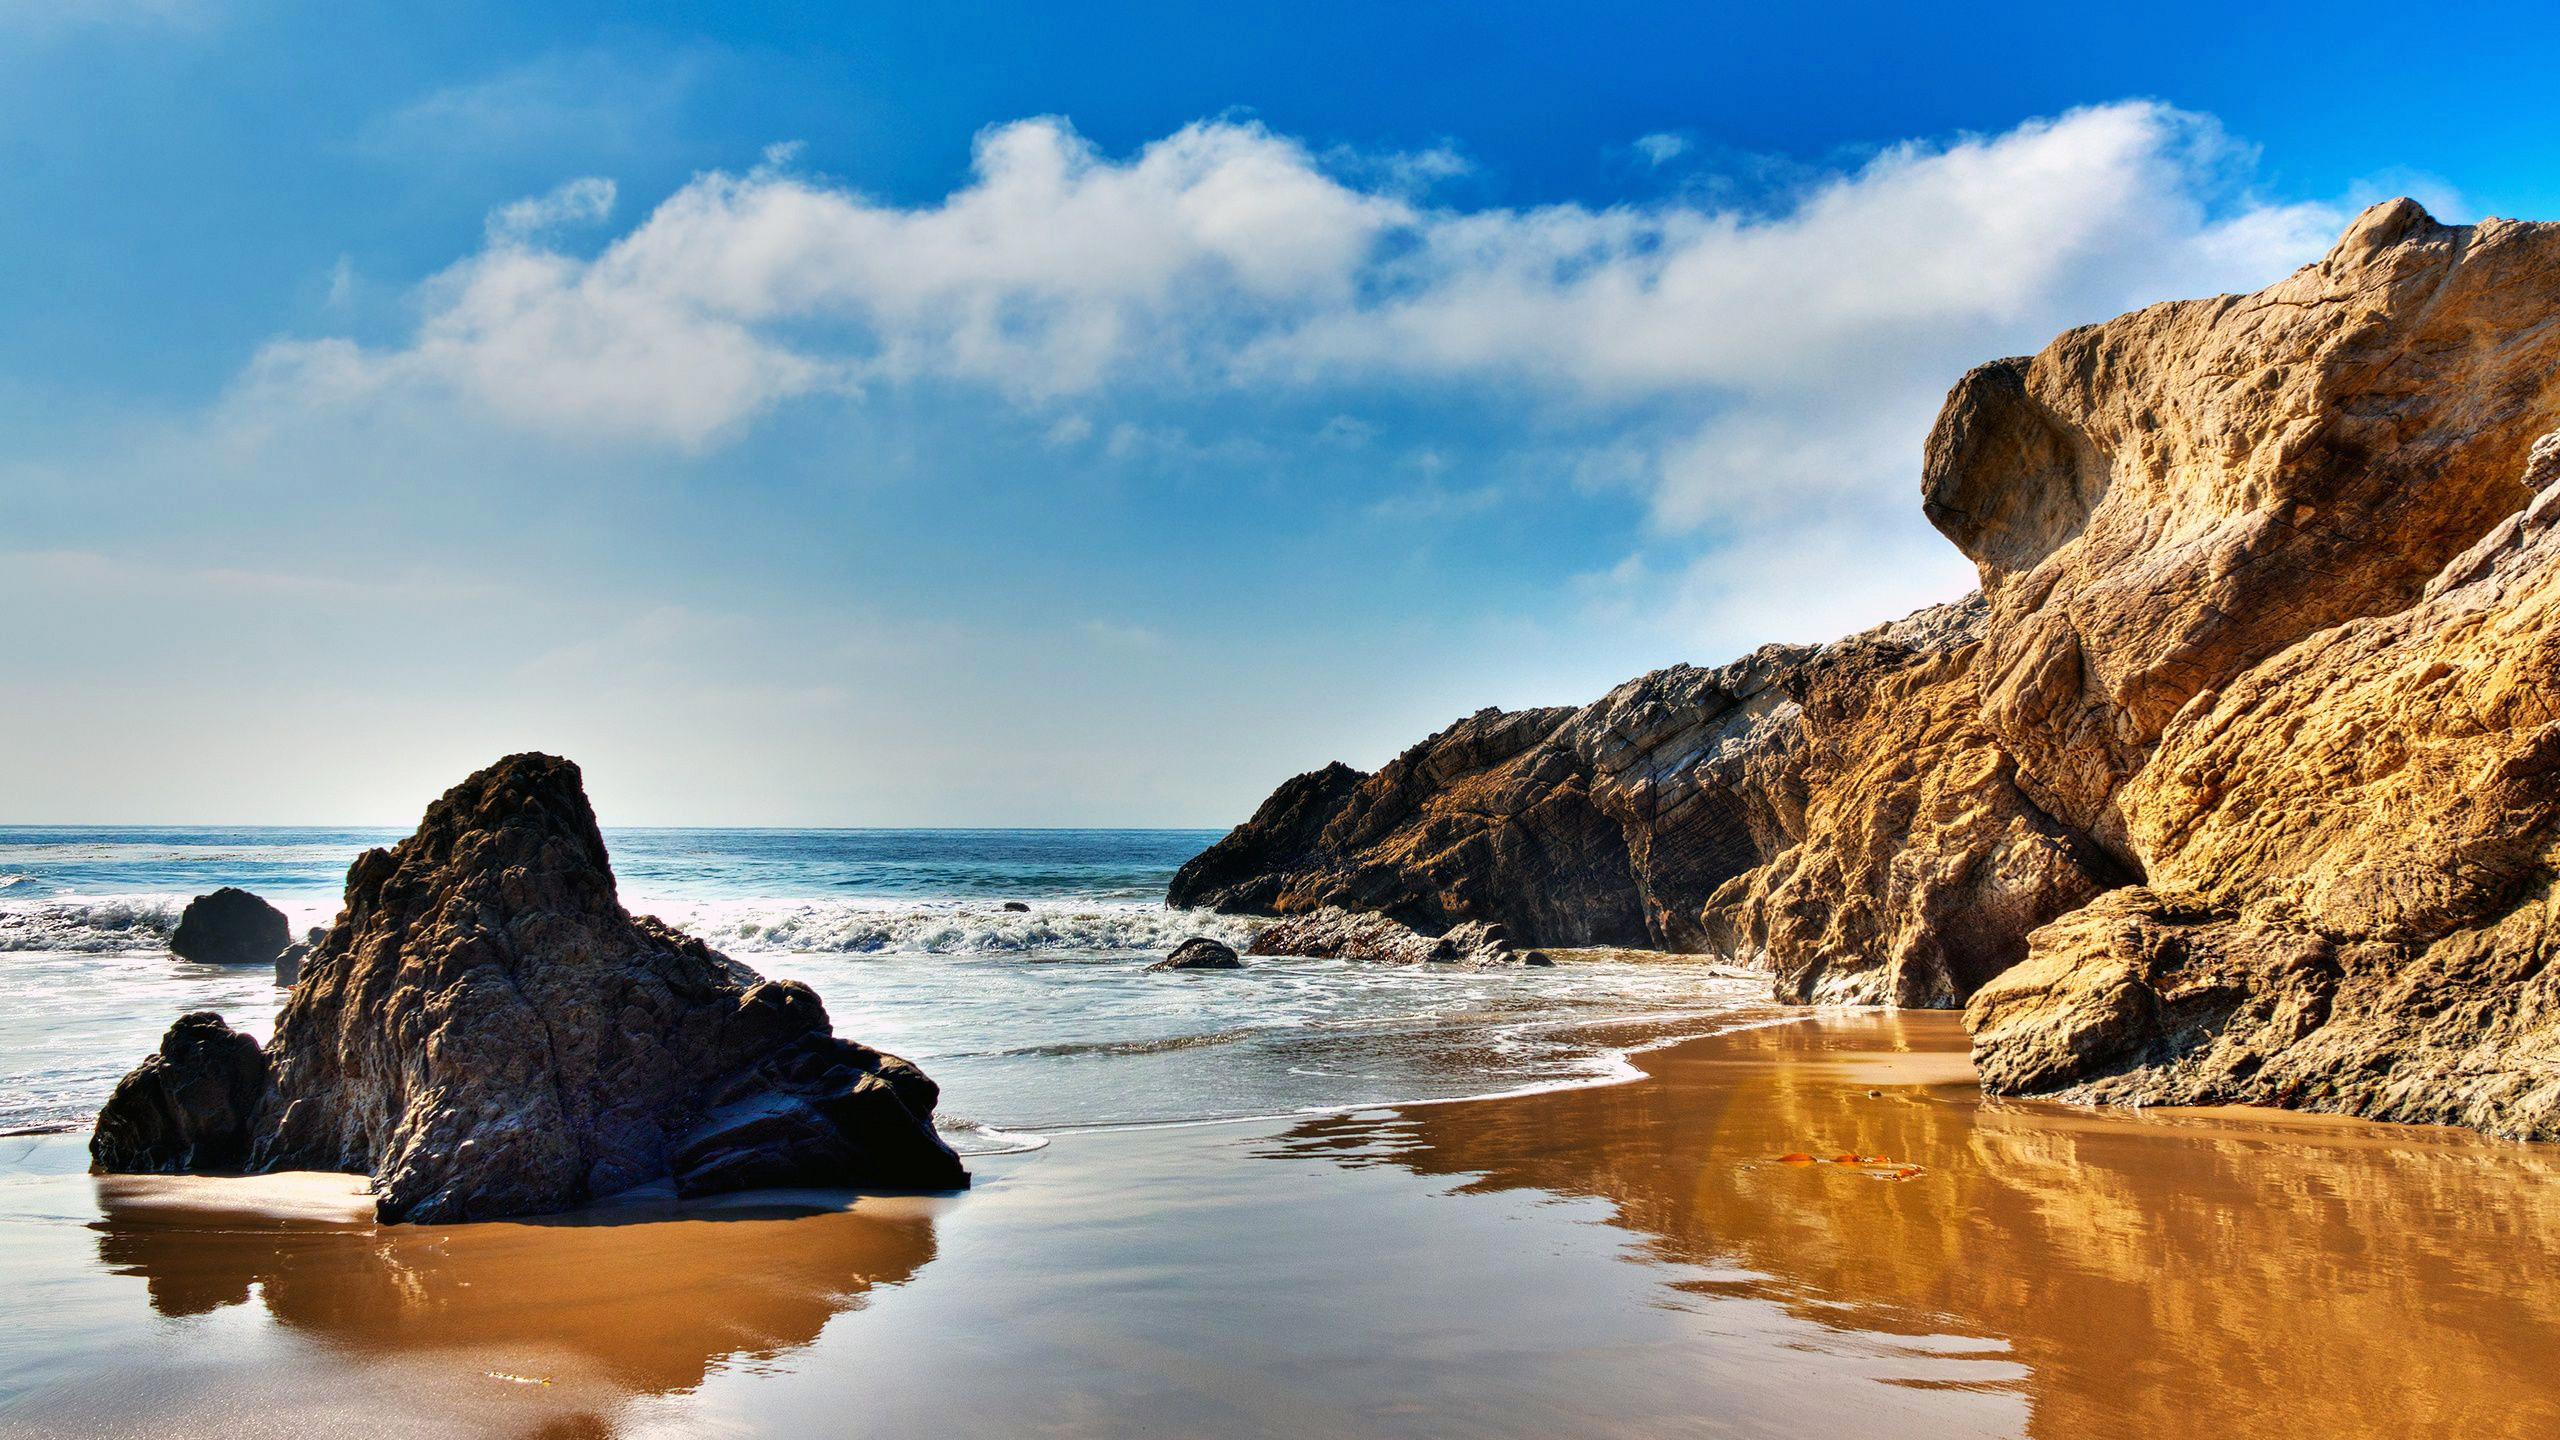 The wallpaper of beach at the Pacific Ocean in Malibu California 2560x1440